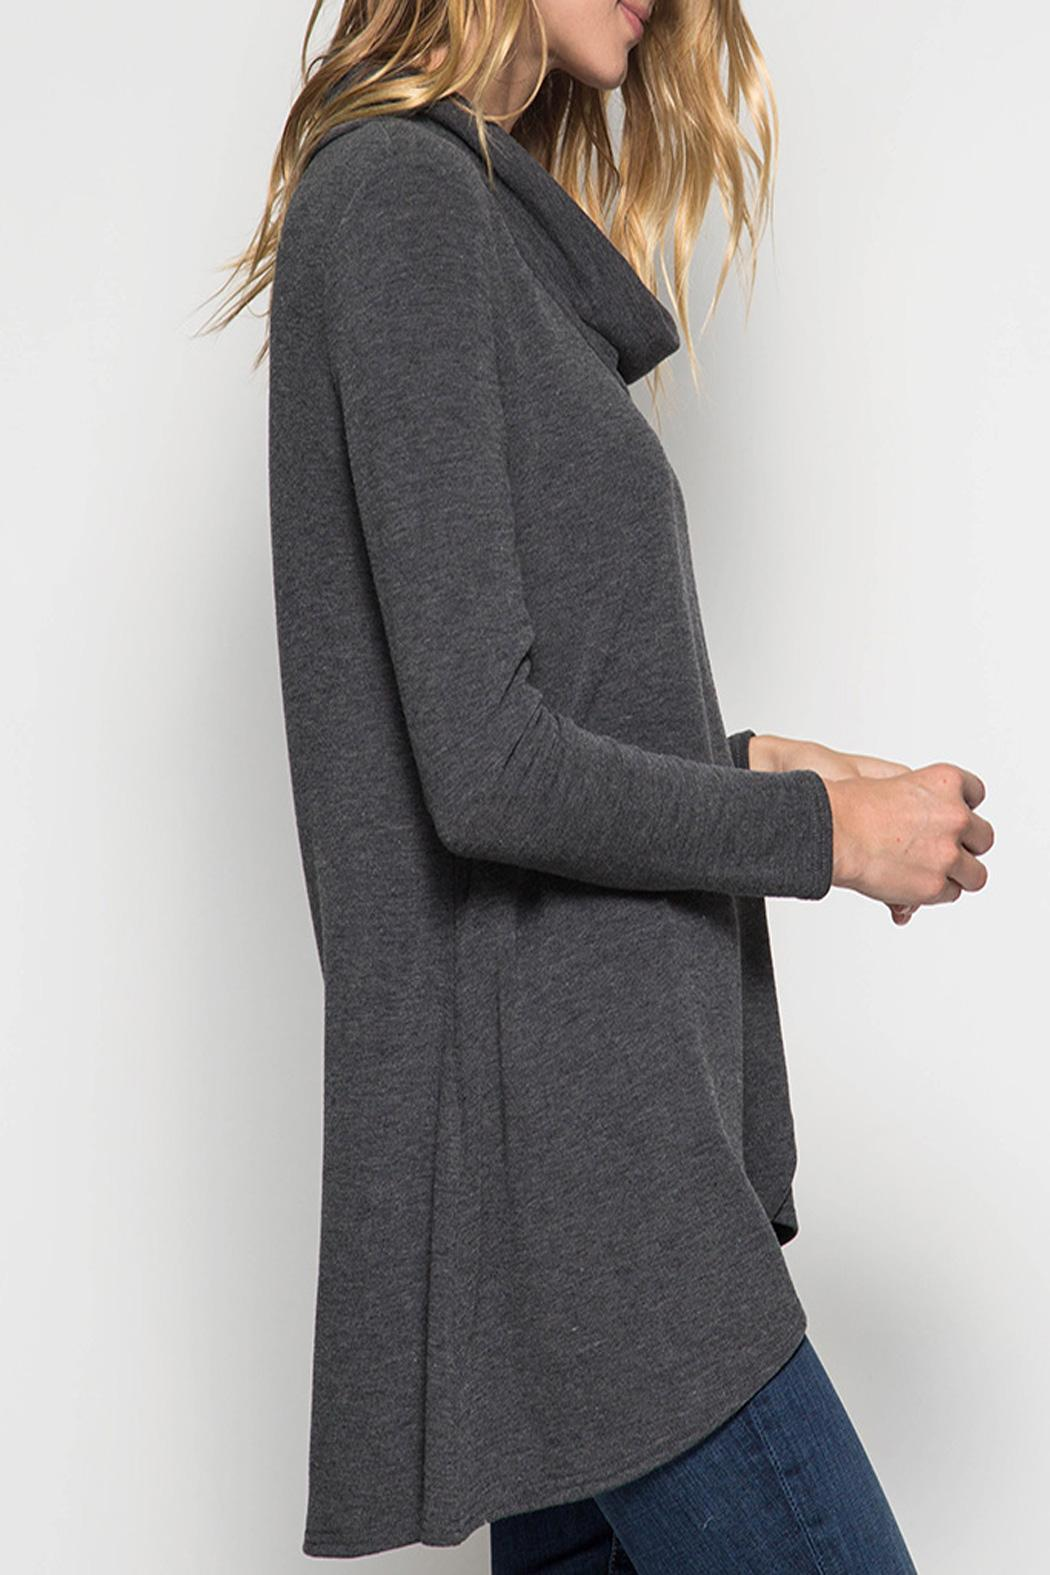 She   Sky Cowl Neck Sweater from New Jersey by Making Waves ...